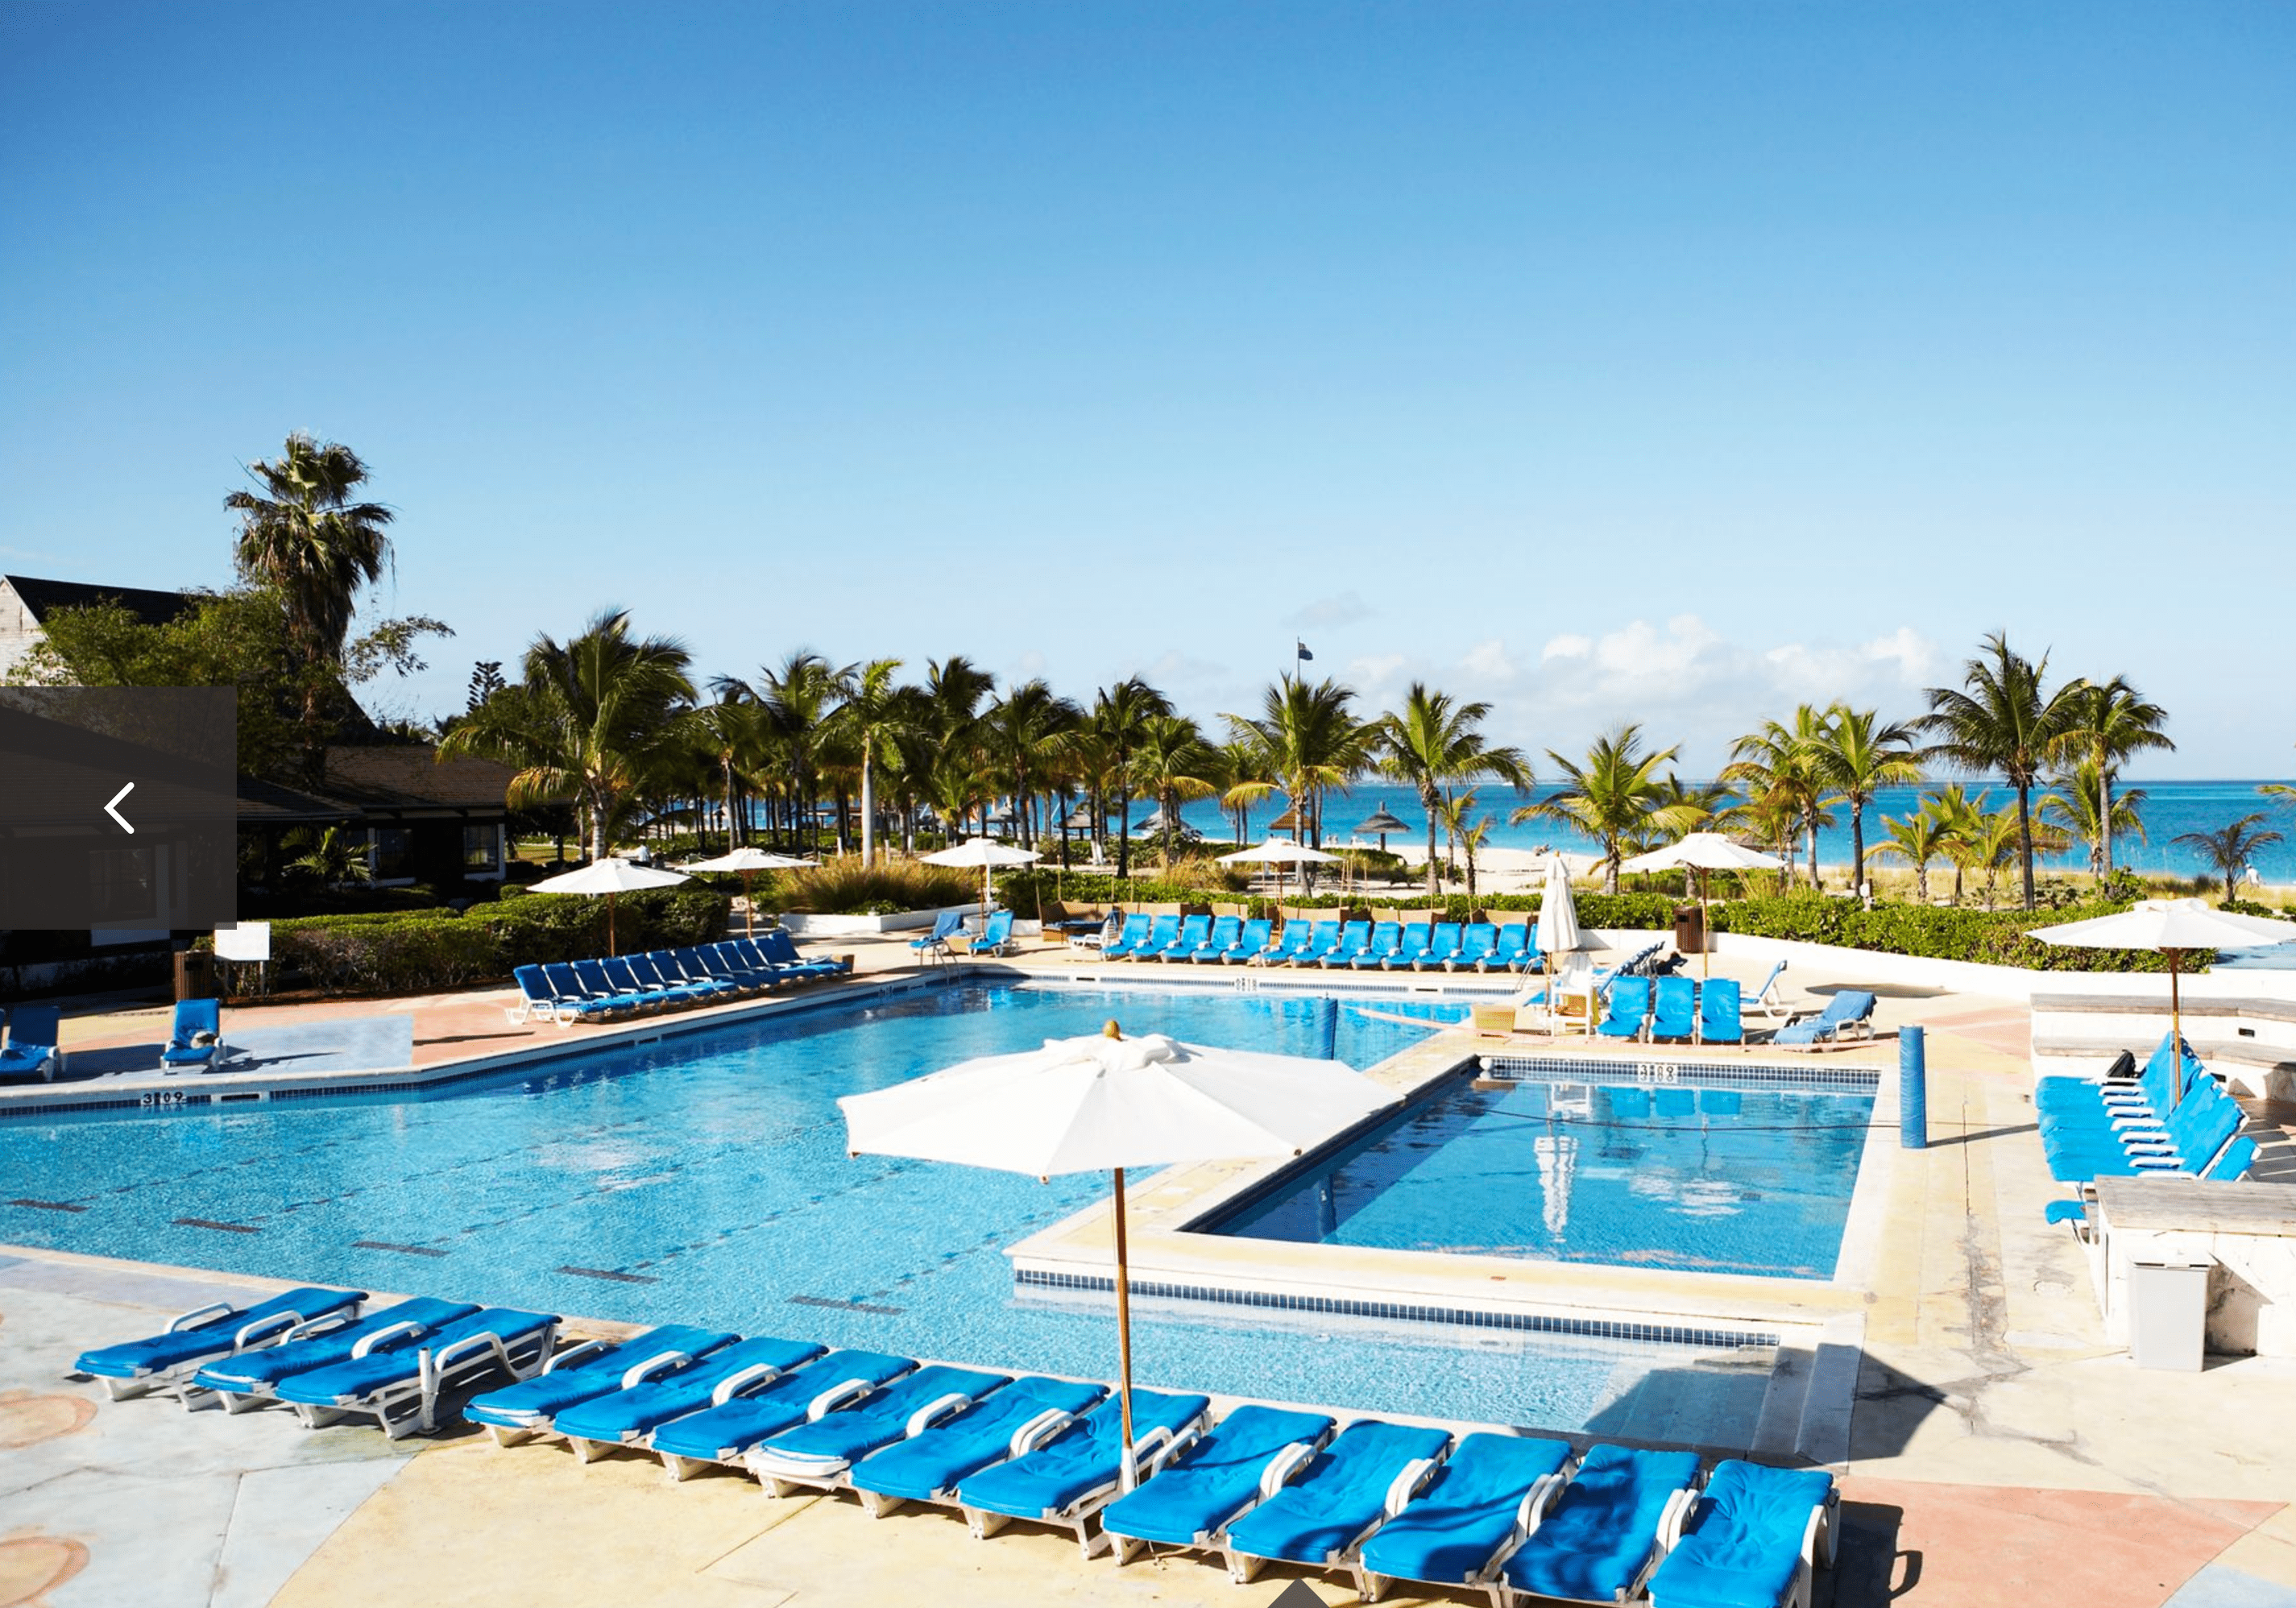 Staying at Club Med Turkoise in the Turks and Caicos